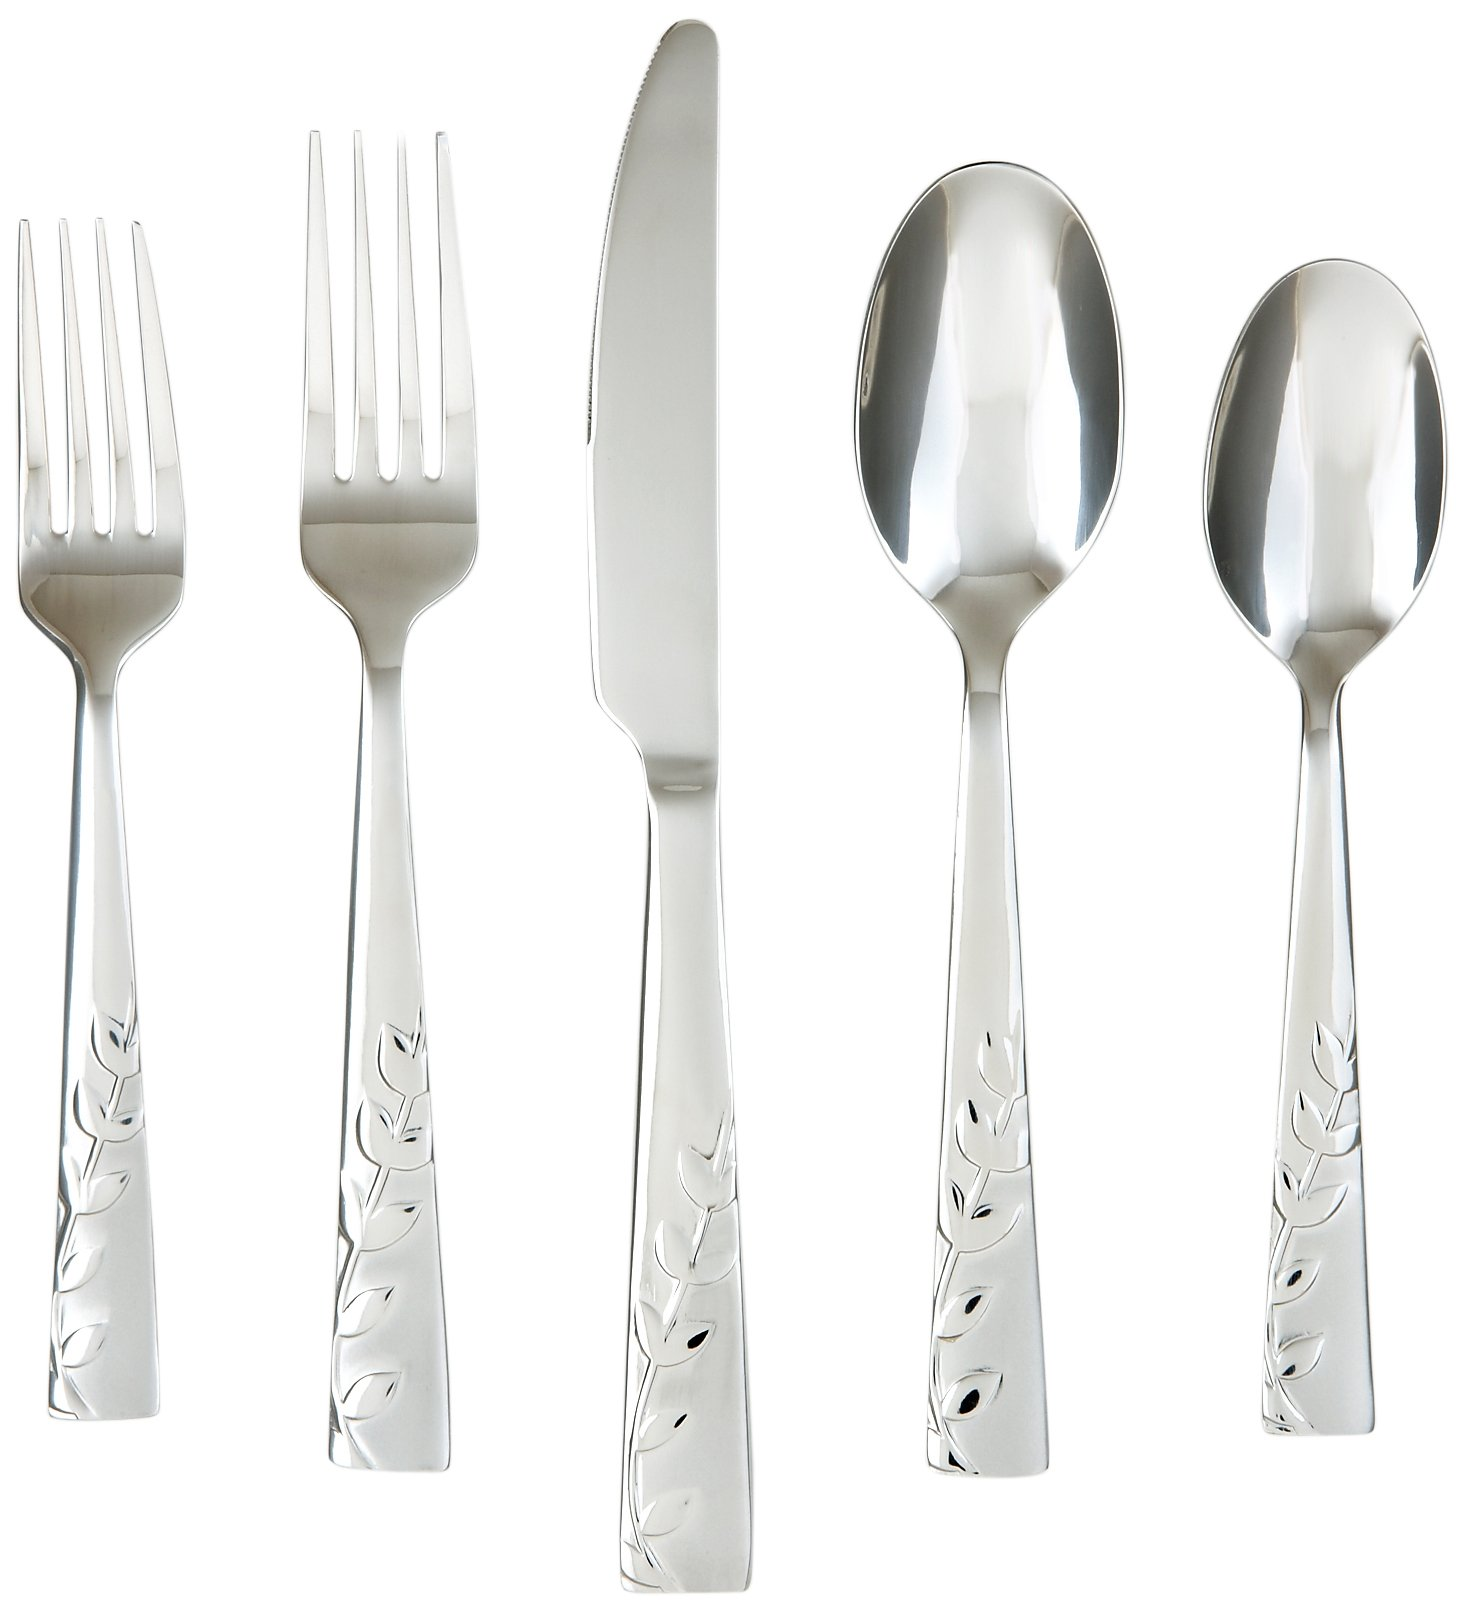 Cambridge Silversmiths 268320R Blossom Sand 20-Piece Flatware Silverware Set, Service for 4, Stainless Steel, Includes Forks/Knives/Spoons, Brushed Finish - SILVERWARE SET SERVICE FOR 4: Silverware Set Includes 4 salad forks, 4 dinner forks, 4 teaspoons, 4 tablespoons, 4 butter knives STAINLESS STEEL: This silverware set is made of very high quality 18/0 stainless steel. BRUSHED FINISH: The flatware set has a brushed finish which makes it ideal for everyday use - kitchen-tabletop, kitchen-dining-room, flatware - 71GFr4wMfnL -